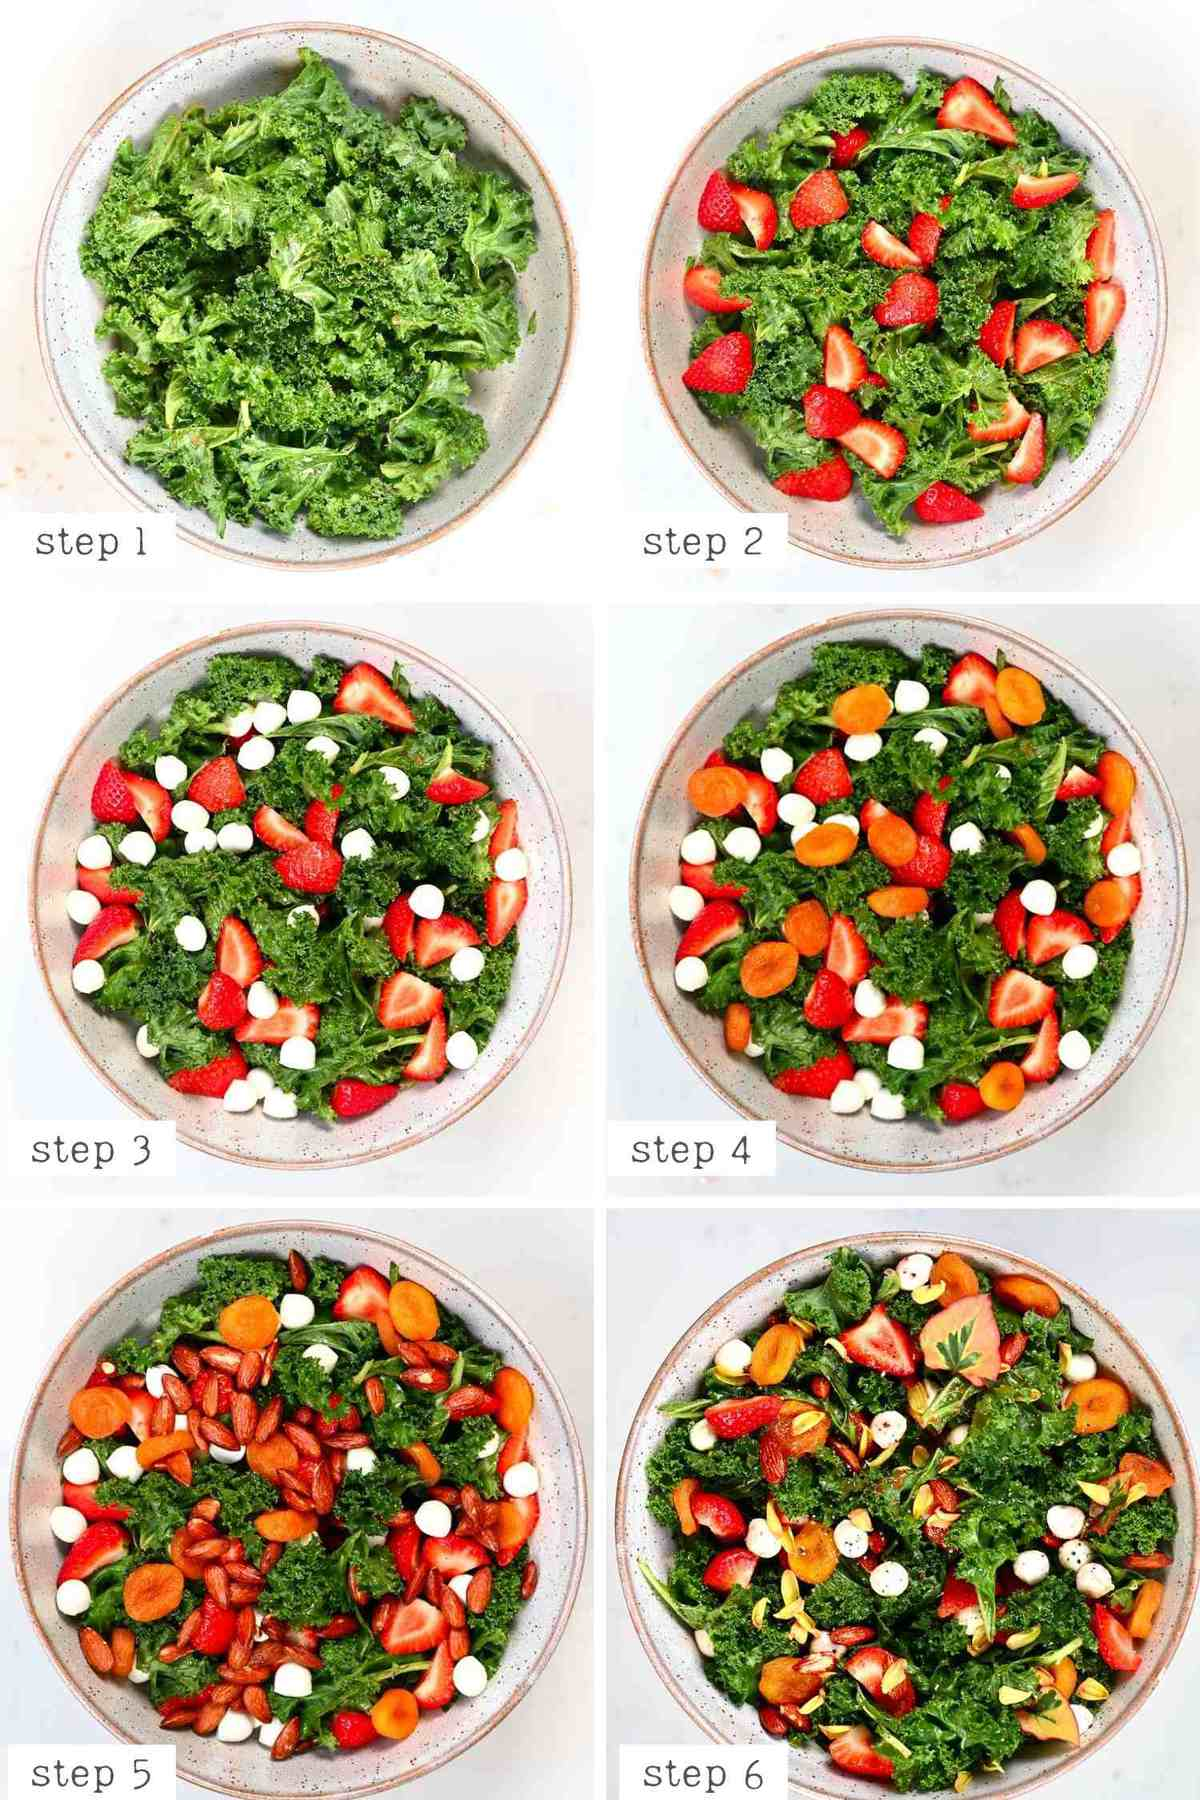 Steps for making Strawberry Salad